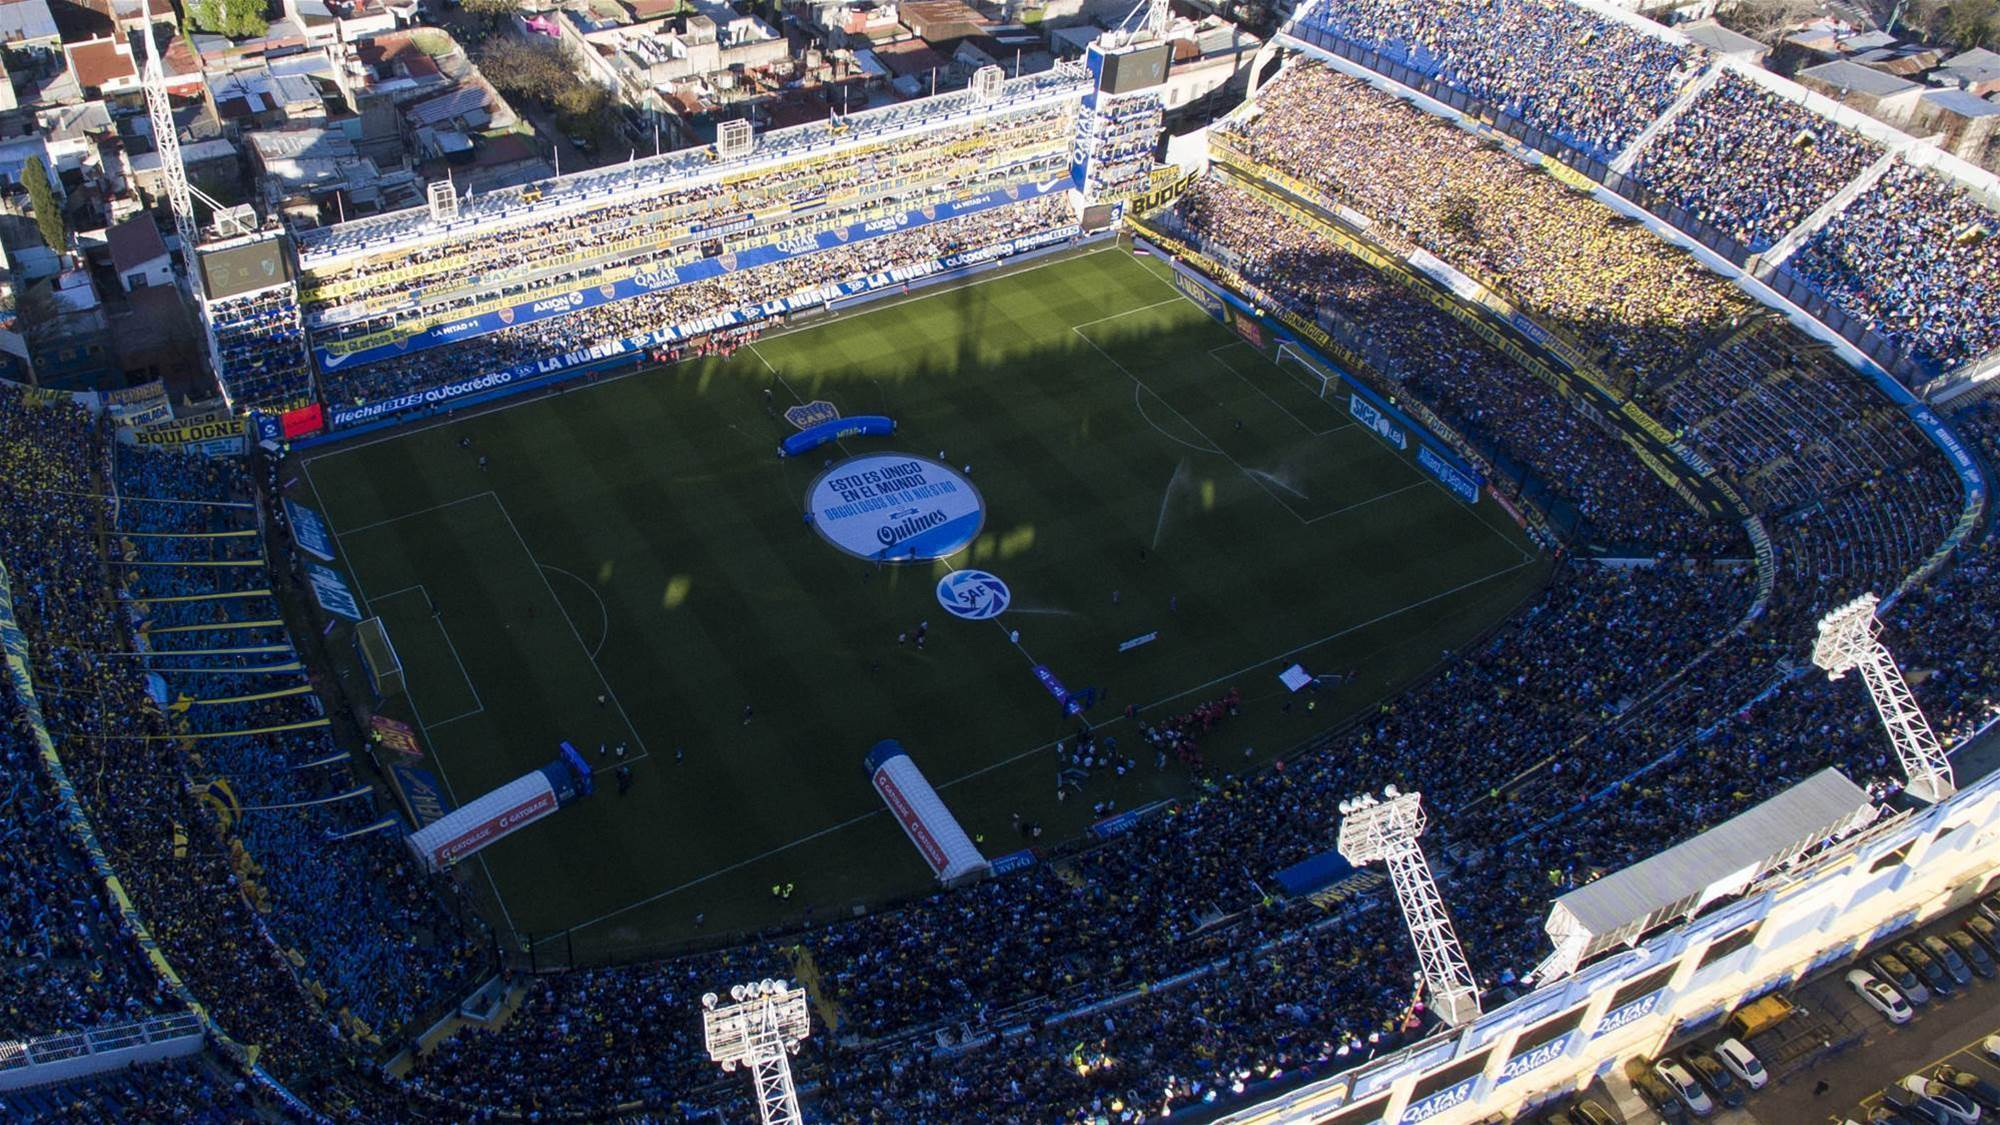 Away fans banned from Superclasico Libertadores final